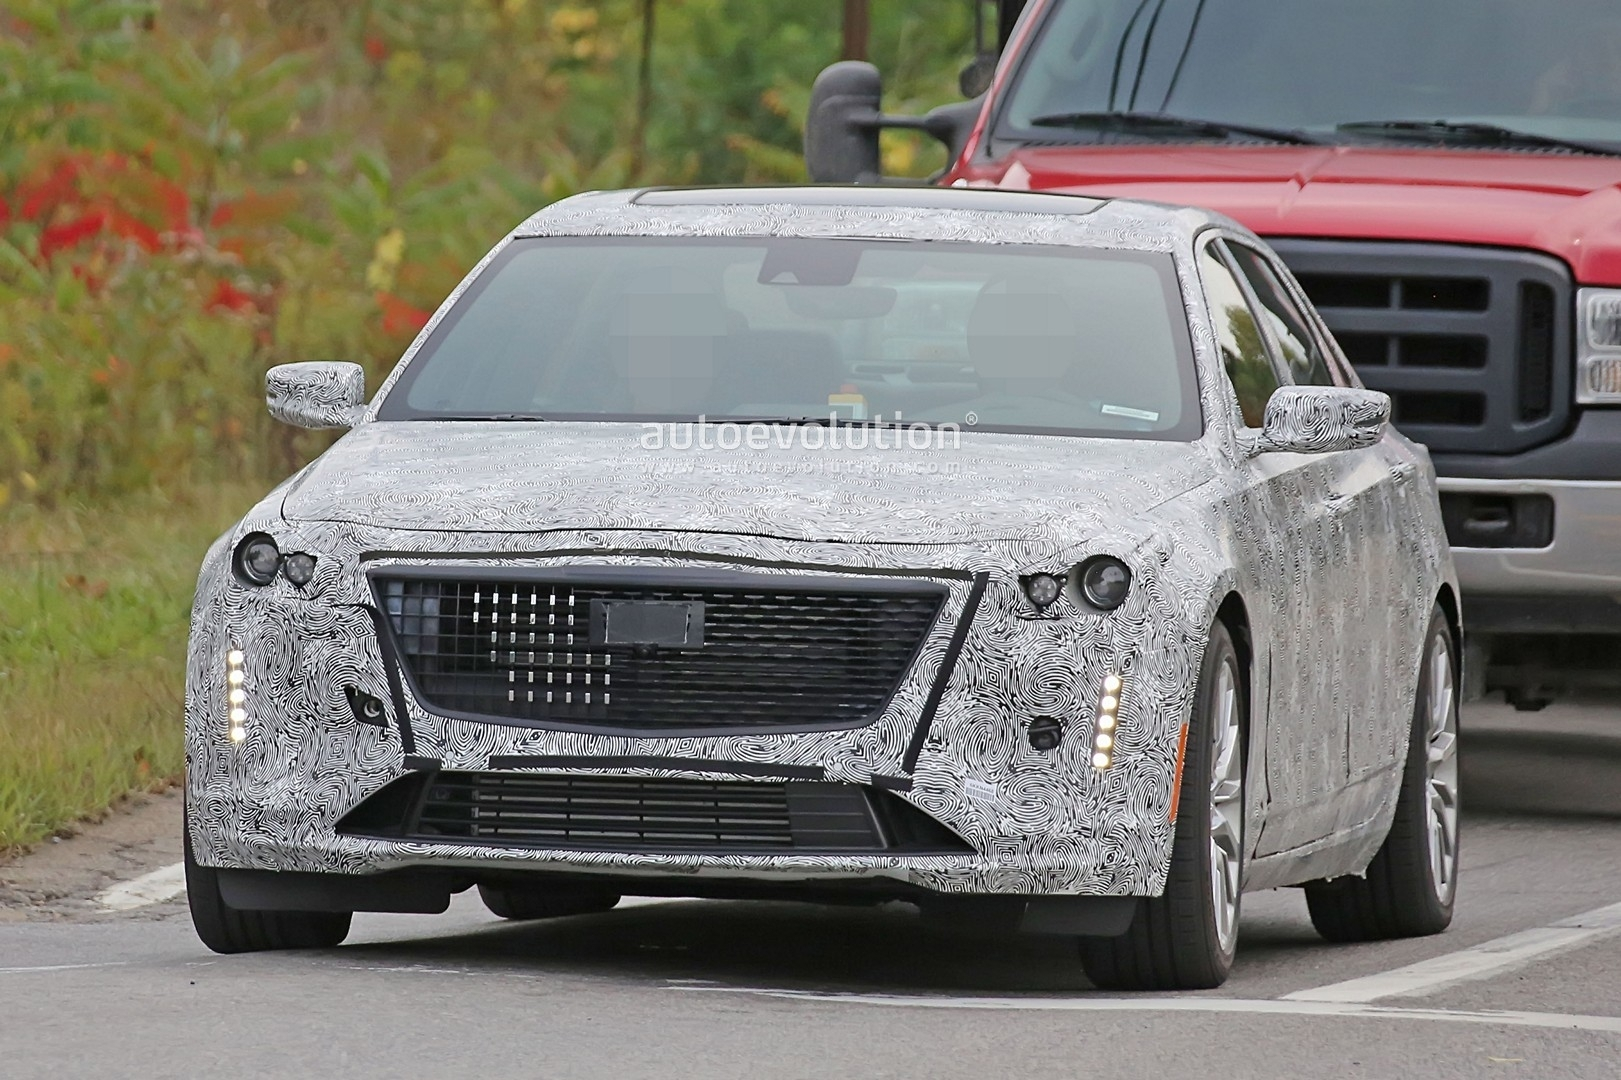 67 A Spy Shots Cadillac Xt5 Speed Test